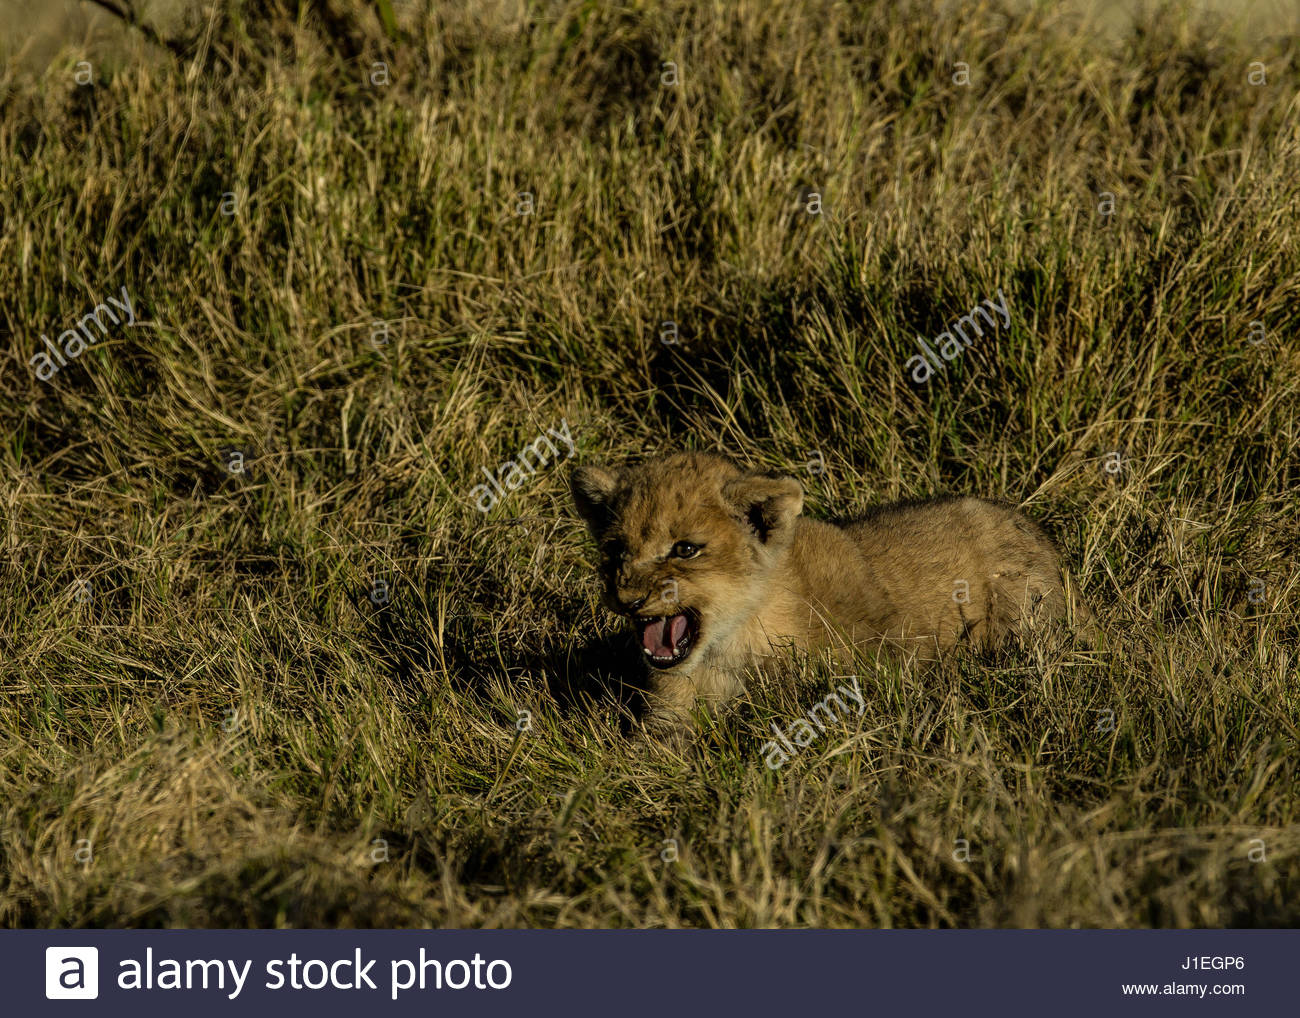 A lion Cub, Panthera leo, resting in the grass in Botswana's Okavango Delta. - Stock Image